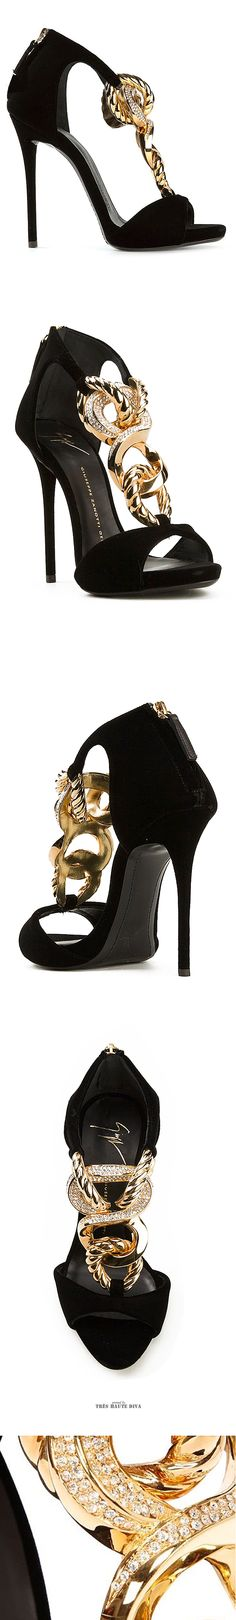 Giuseppe Zanotti Jeweled Chain Velvet Sandals ♔THD♔